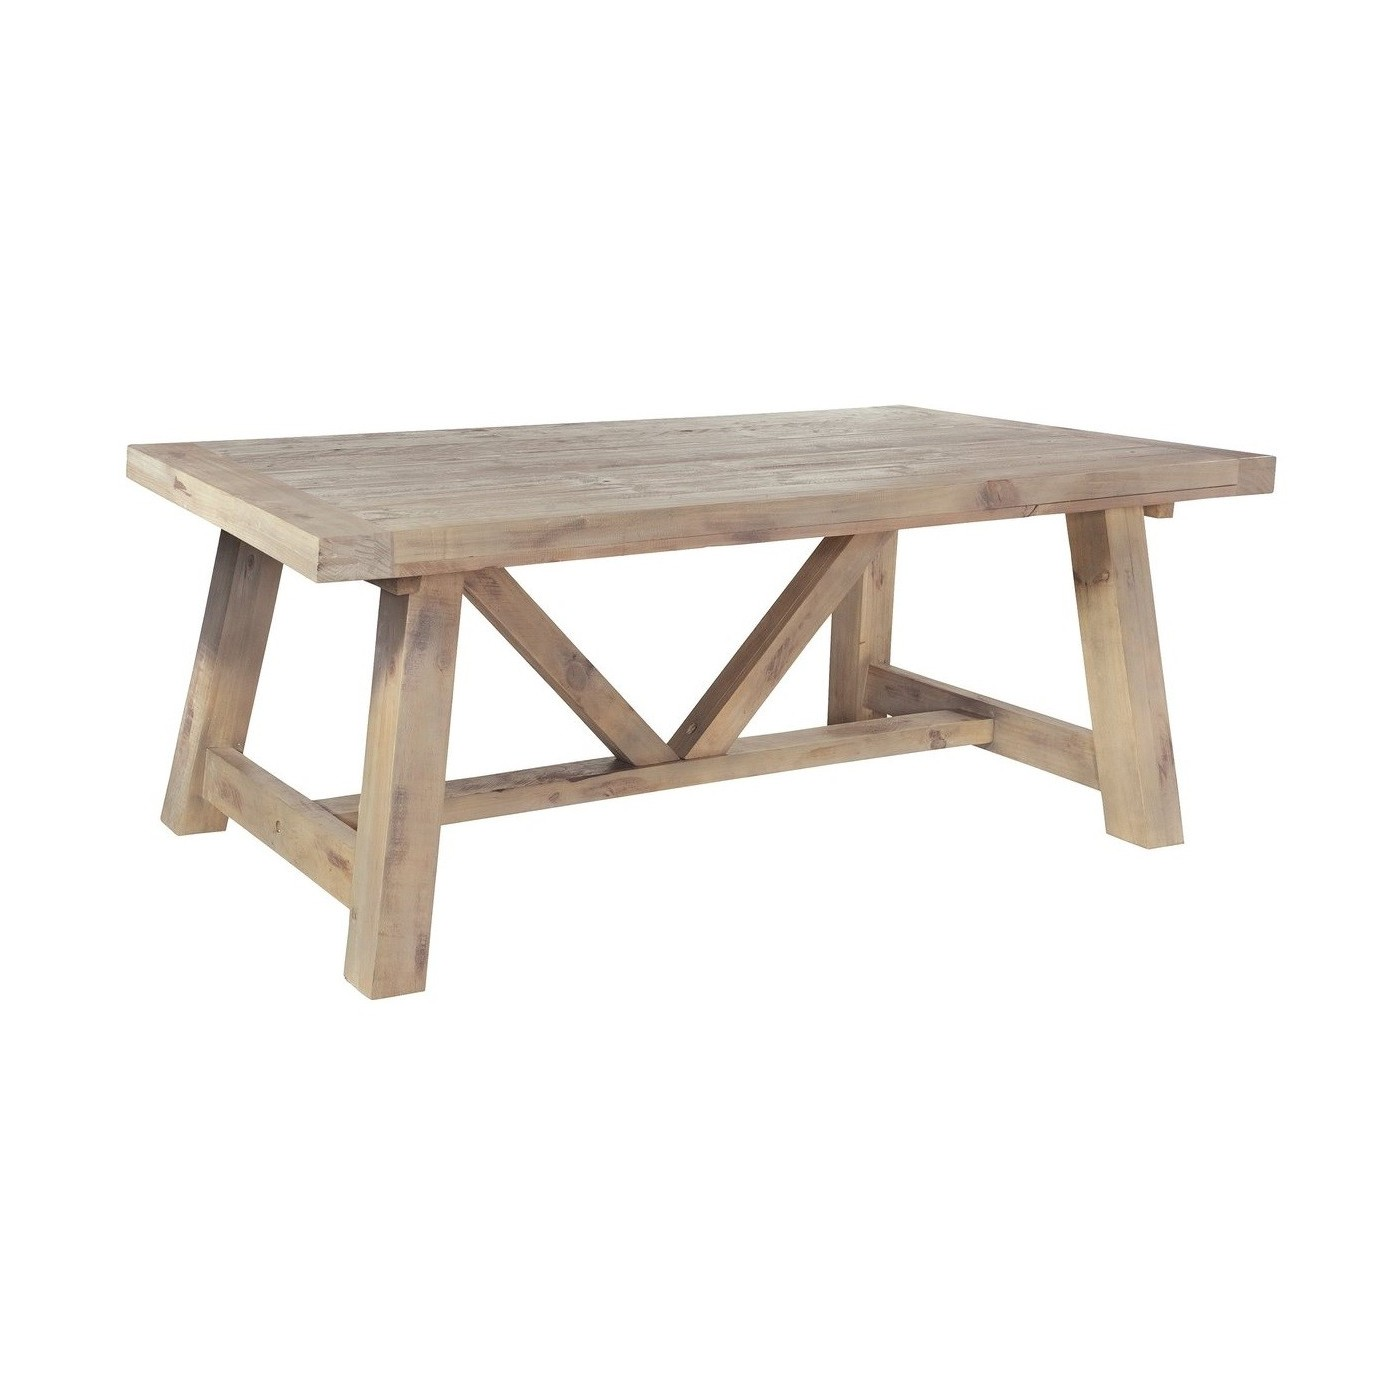 Reclaimed driftwood fixed top dining table millbrook